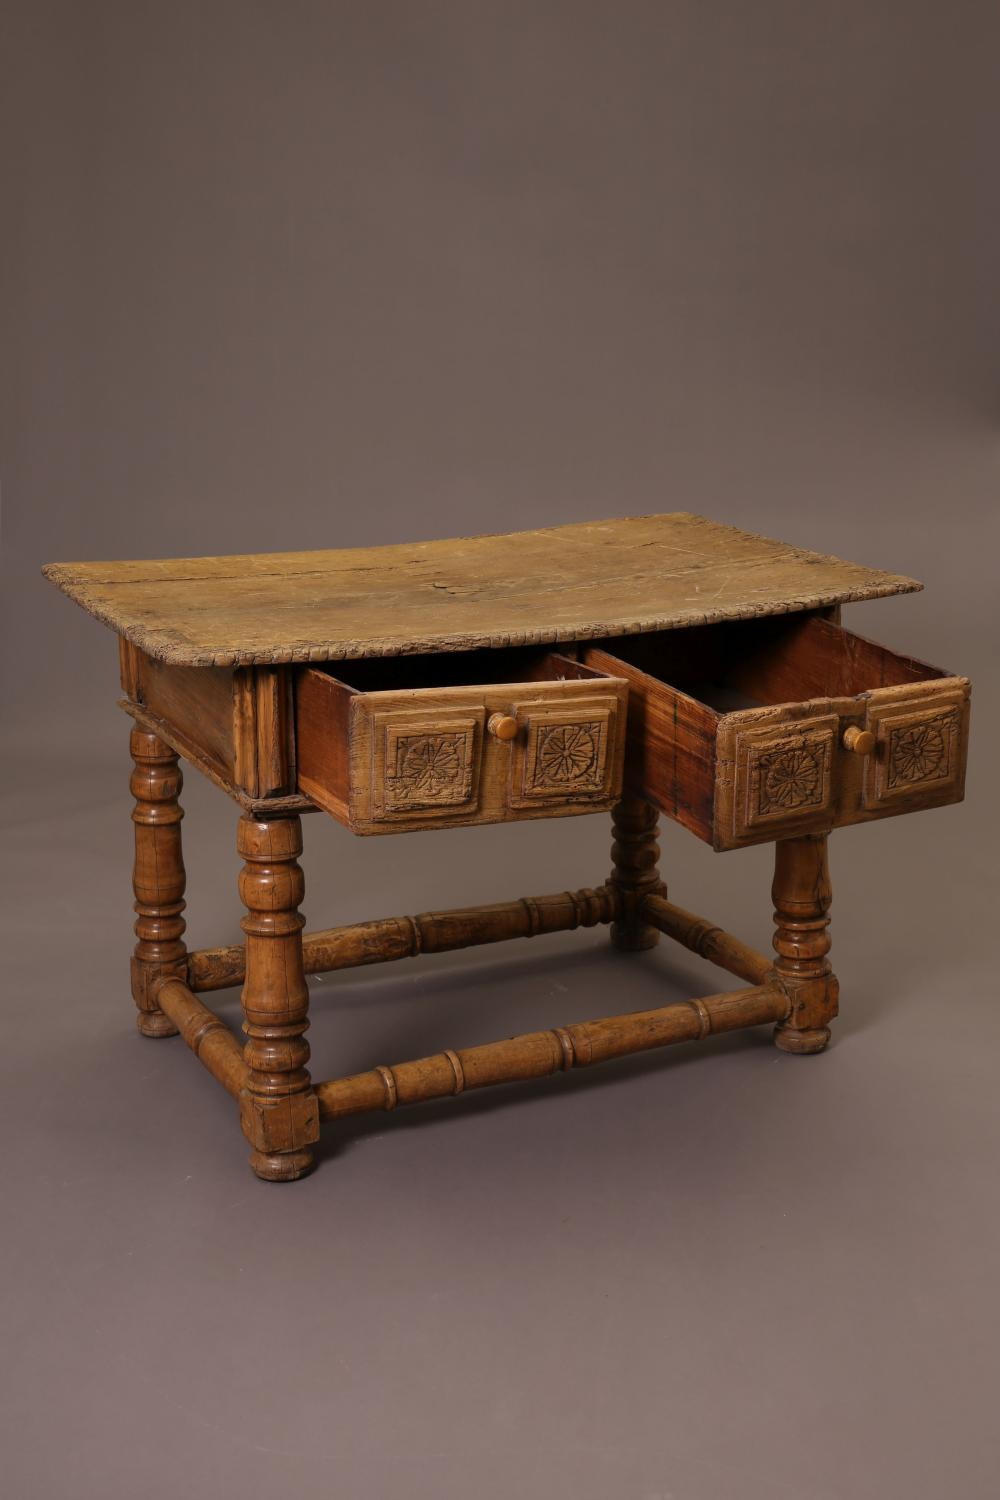 Mexico, Wooden Table with Drawers, ca. 1930